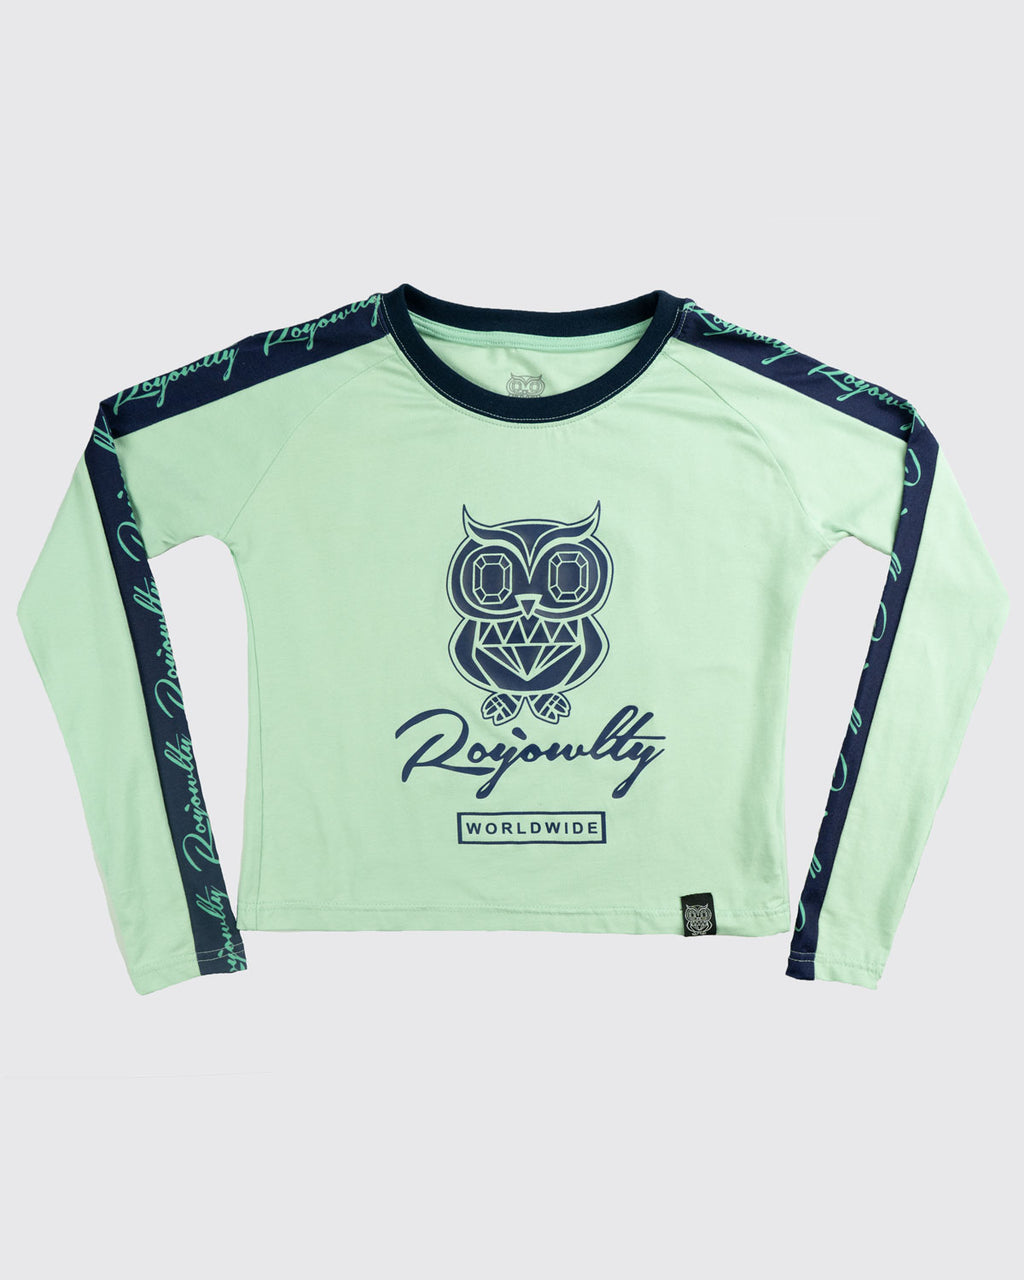 Originals Crop top(long sleeve)- Mint